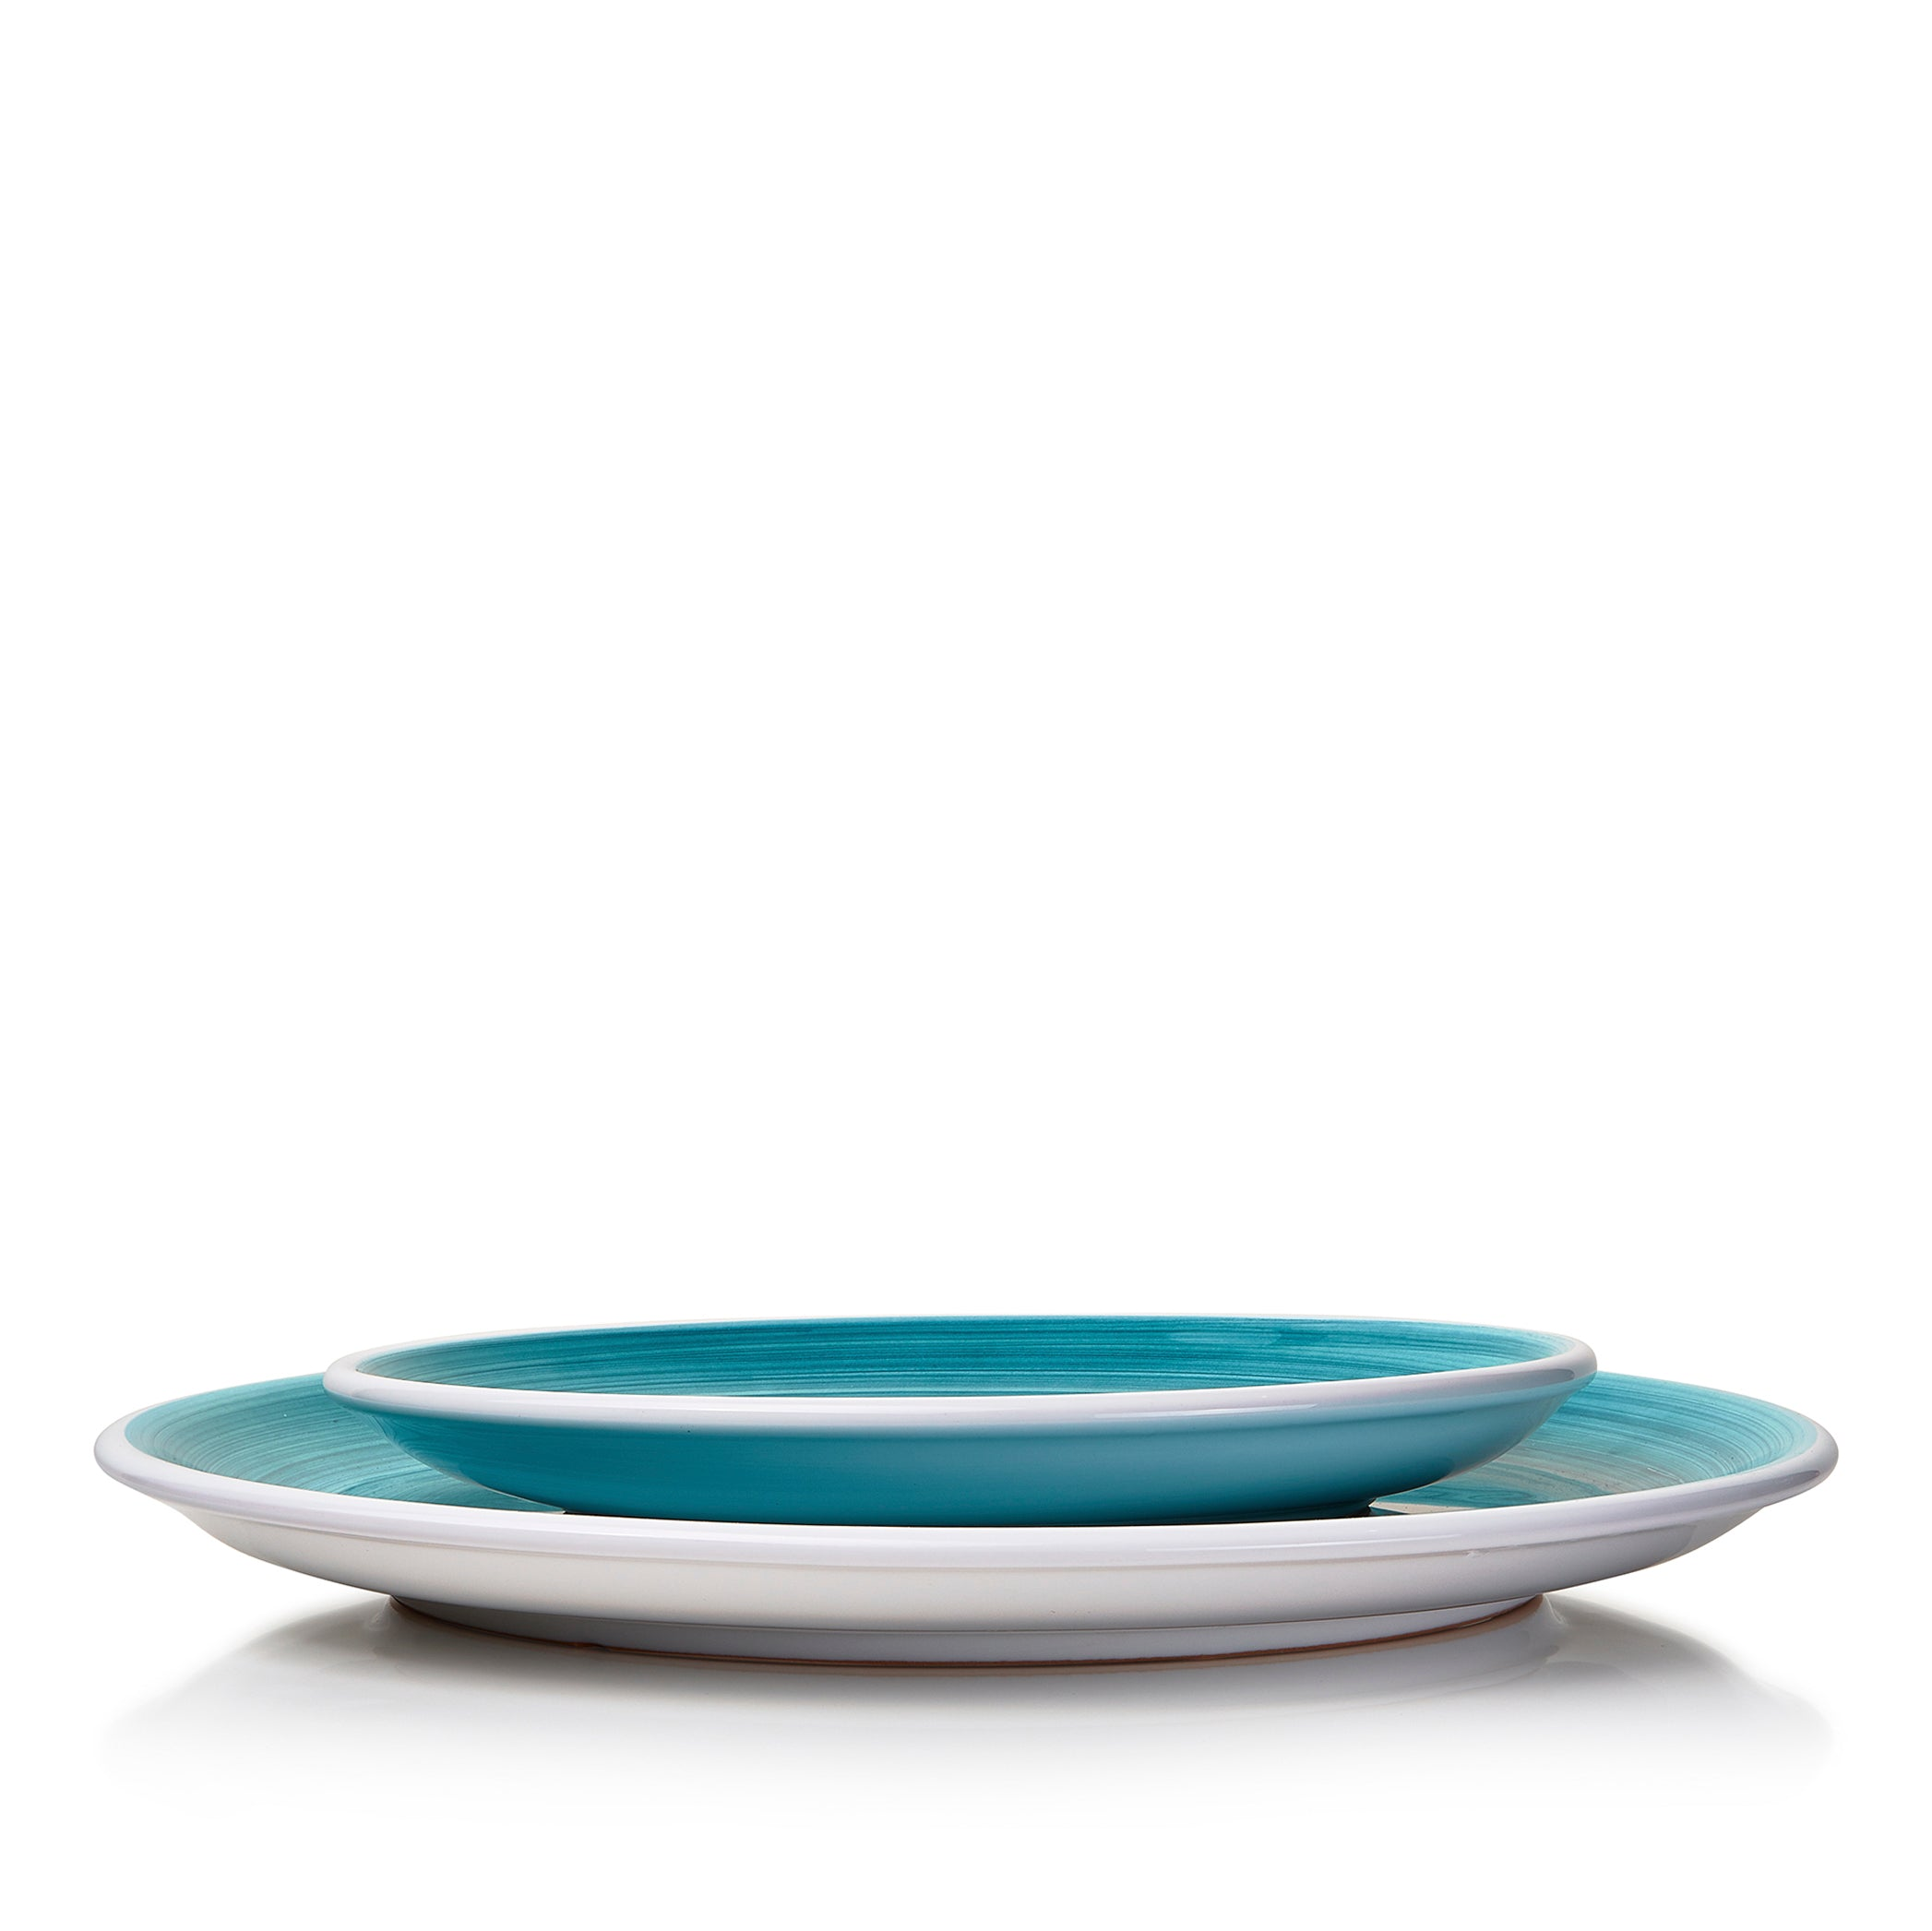 S&B 'Brushed' Ceramic Side Plate in Sea Blue, 21cm